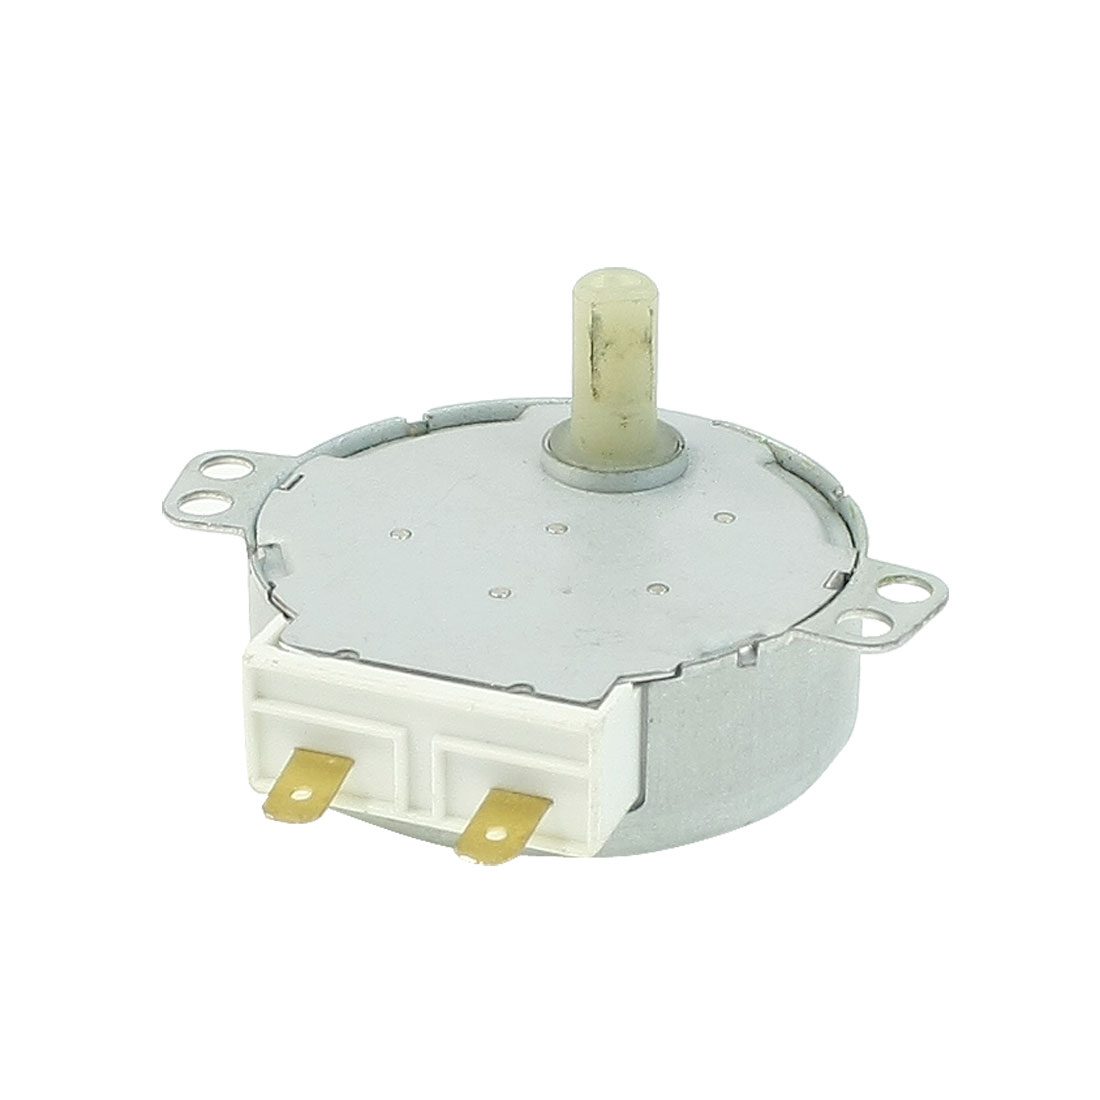 CW/CCW 4W 5 RPM Microwave Oven Turntable Synchronous Motor AC 220V/240V